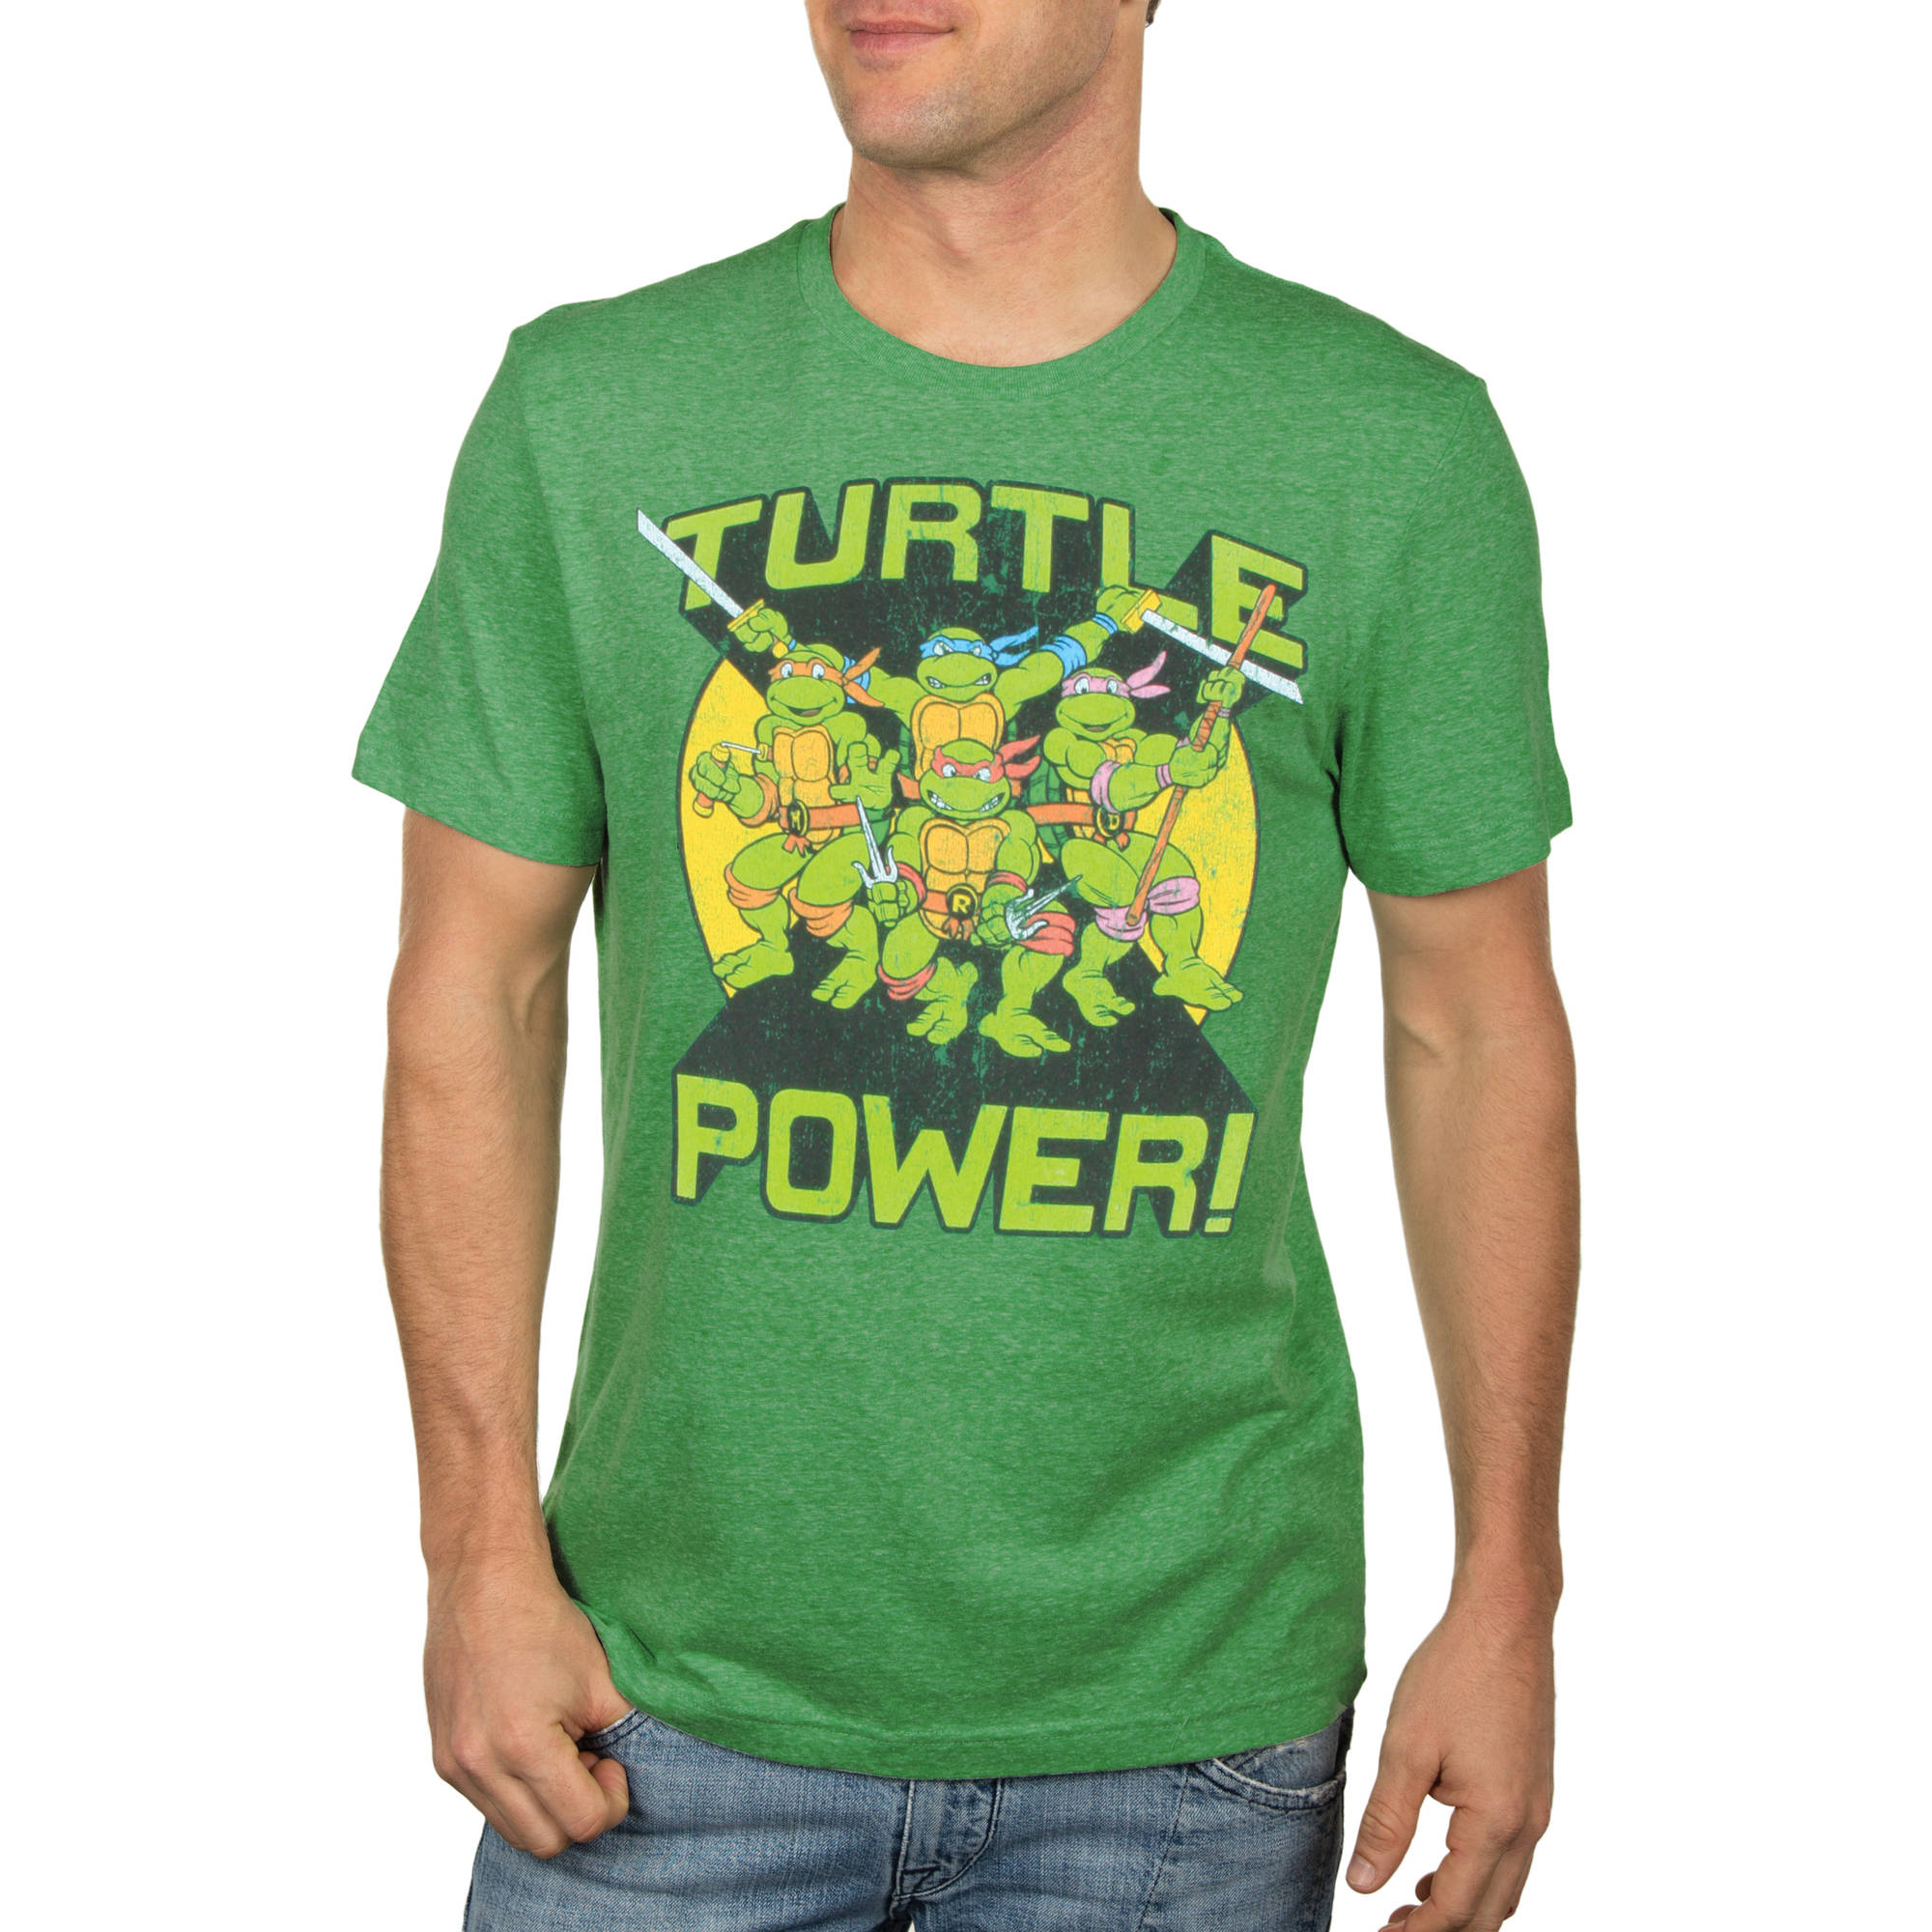 Teenage Mutant Ninja Turtle Turtle Power Men's Graphic Tee